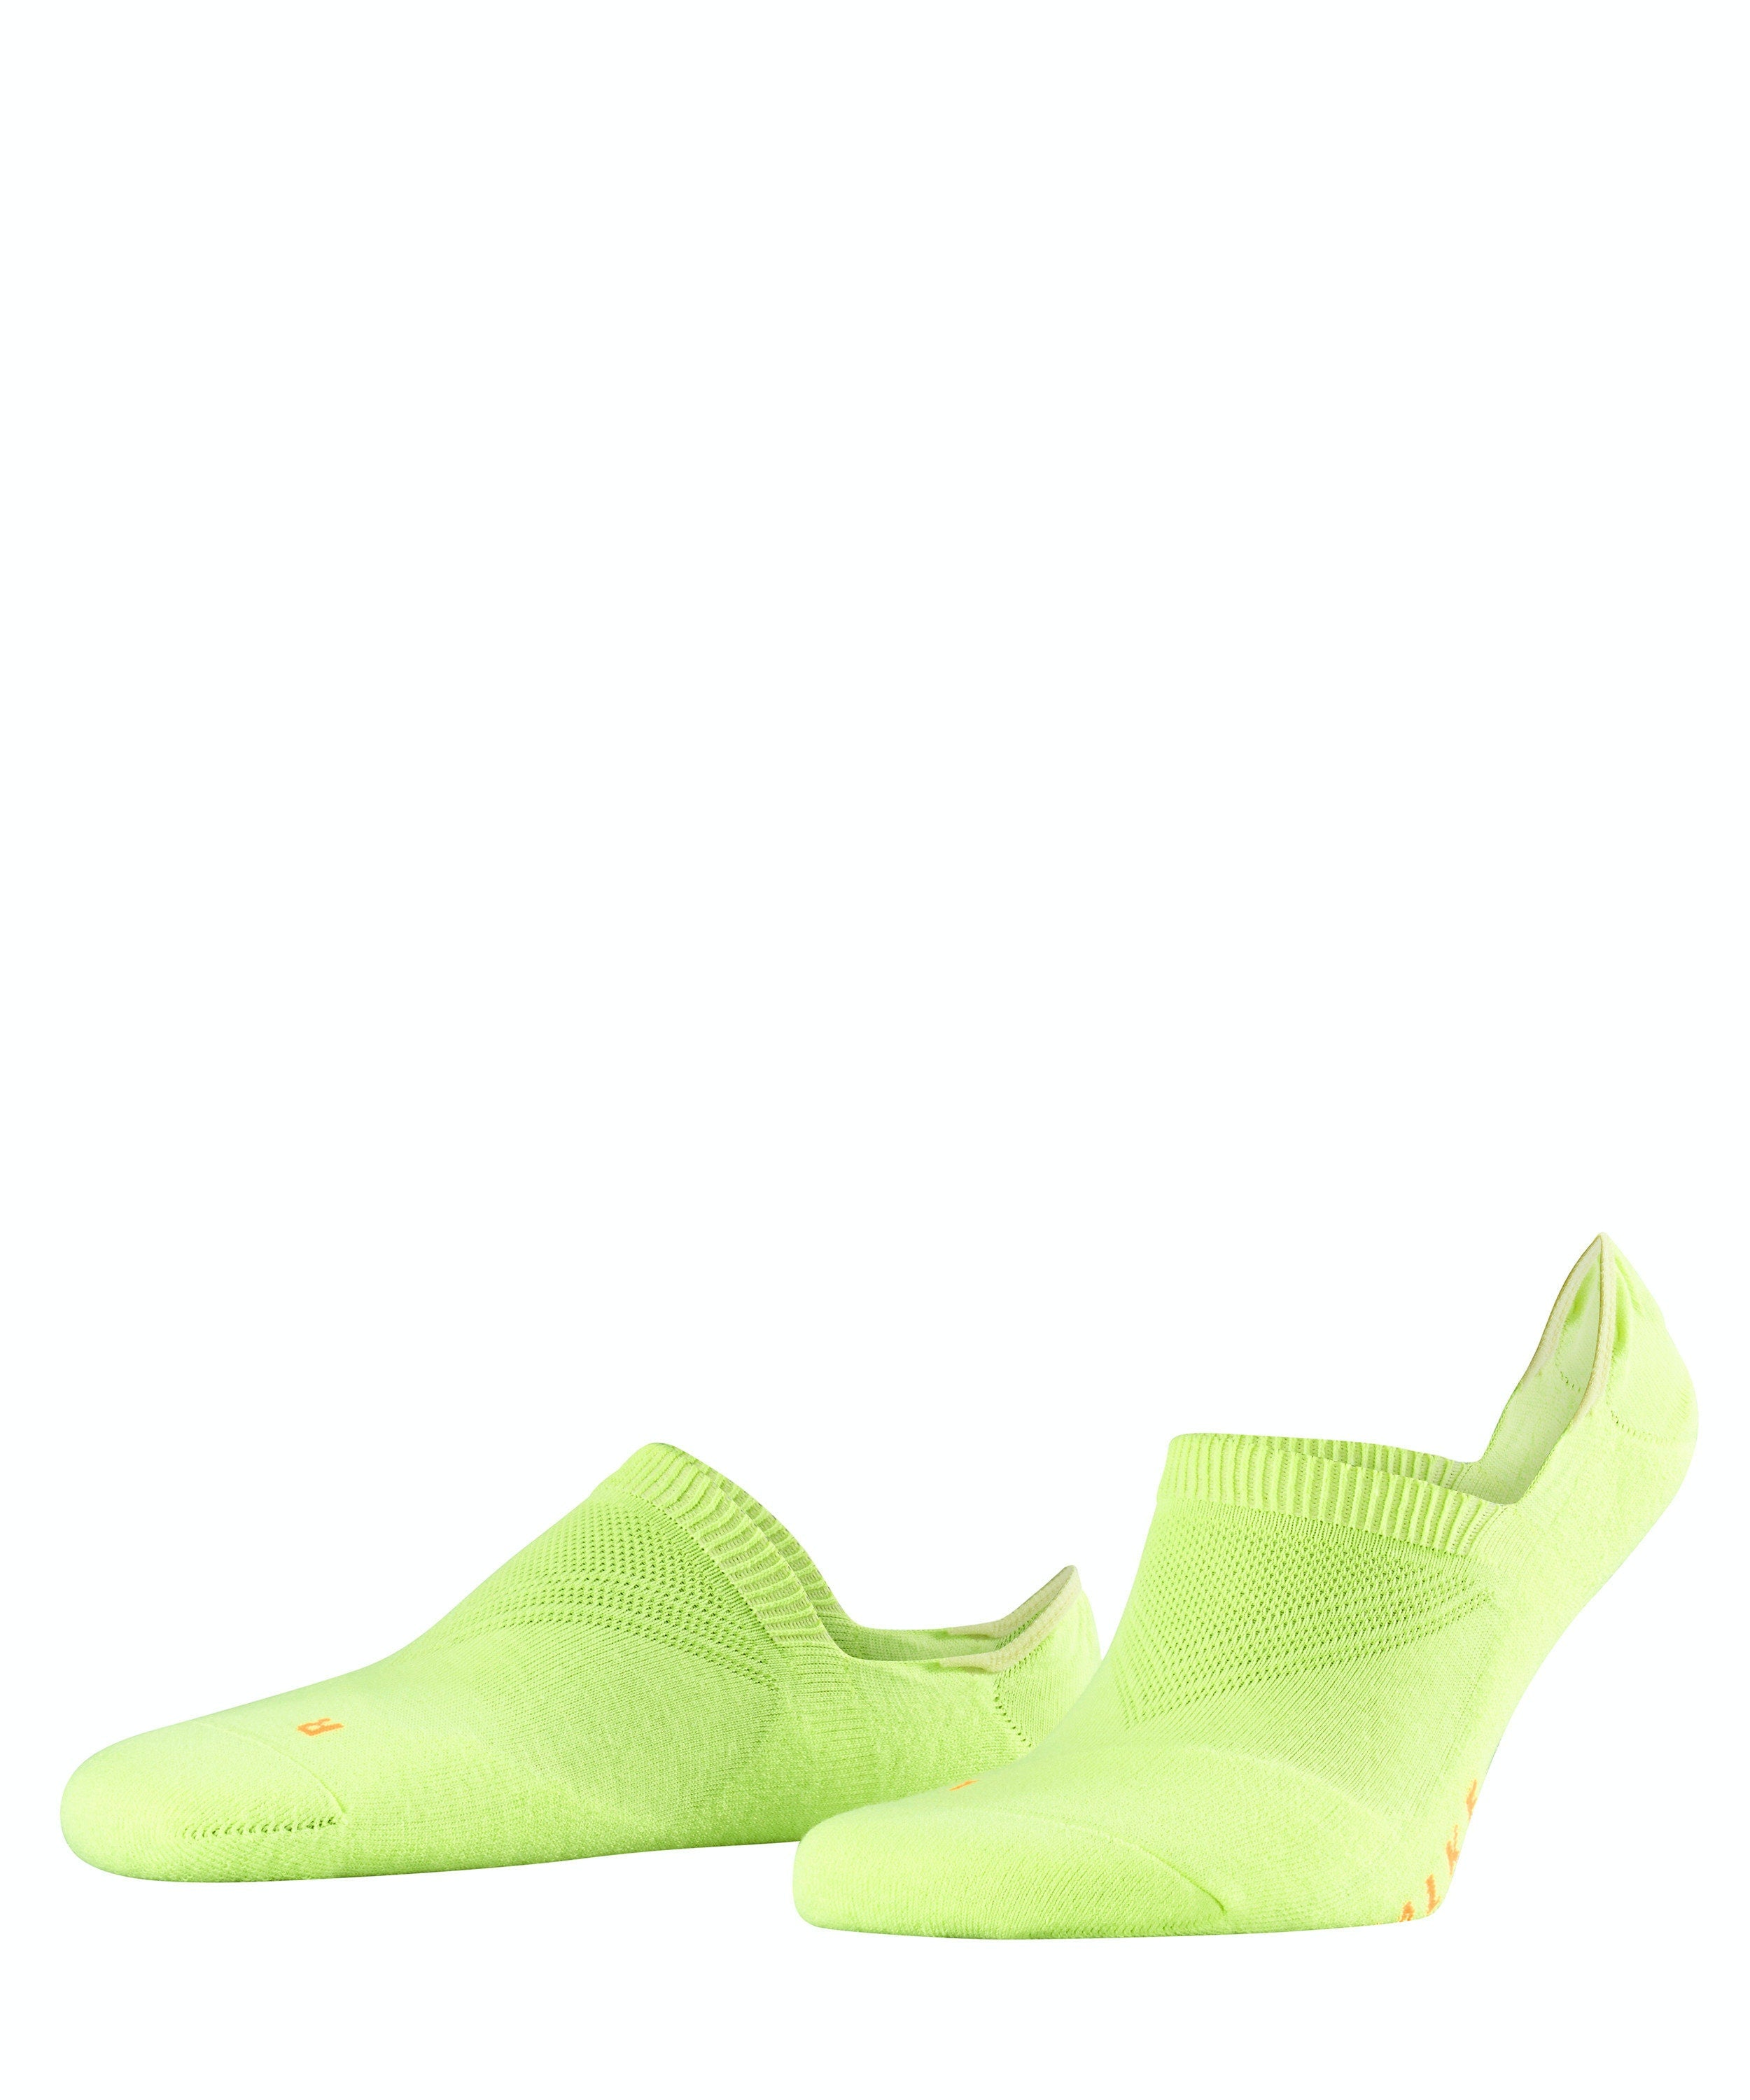 Neon Cool Kick Unisex No Show Socks by Falke